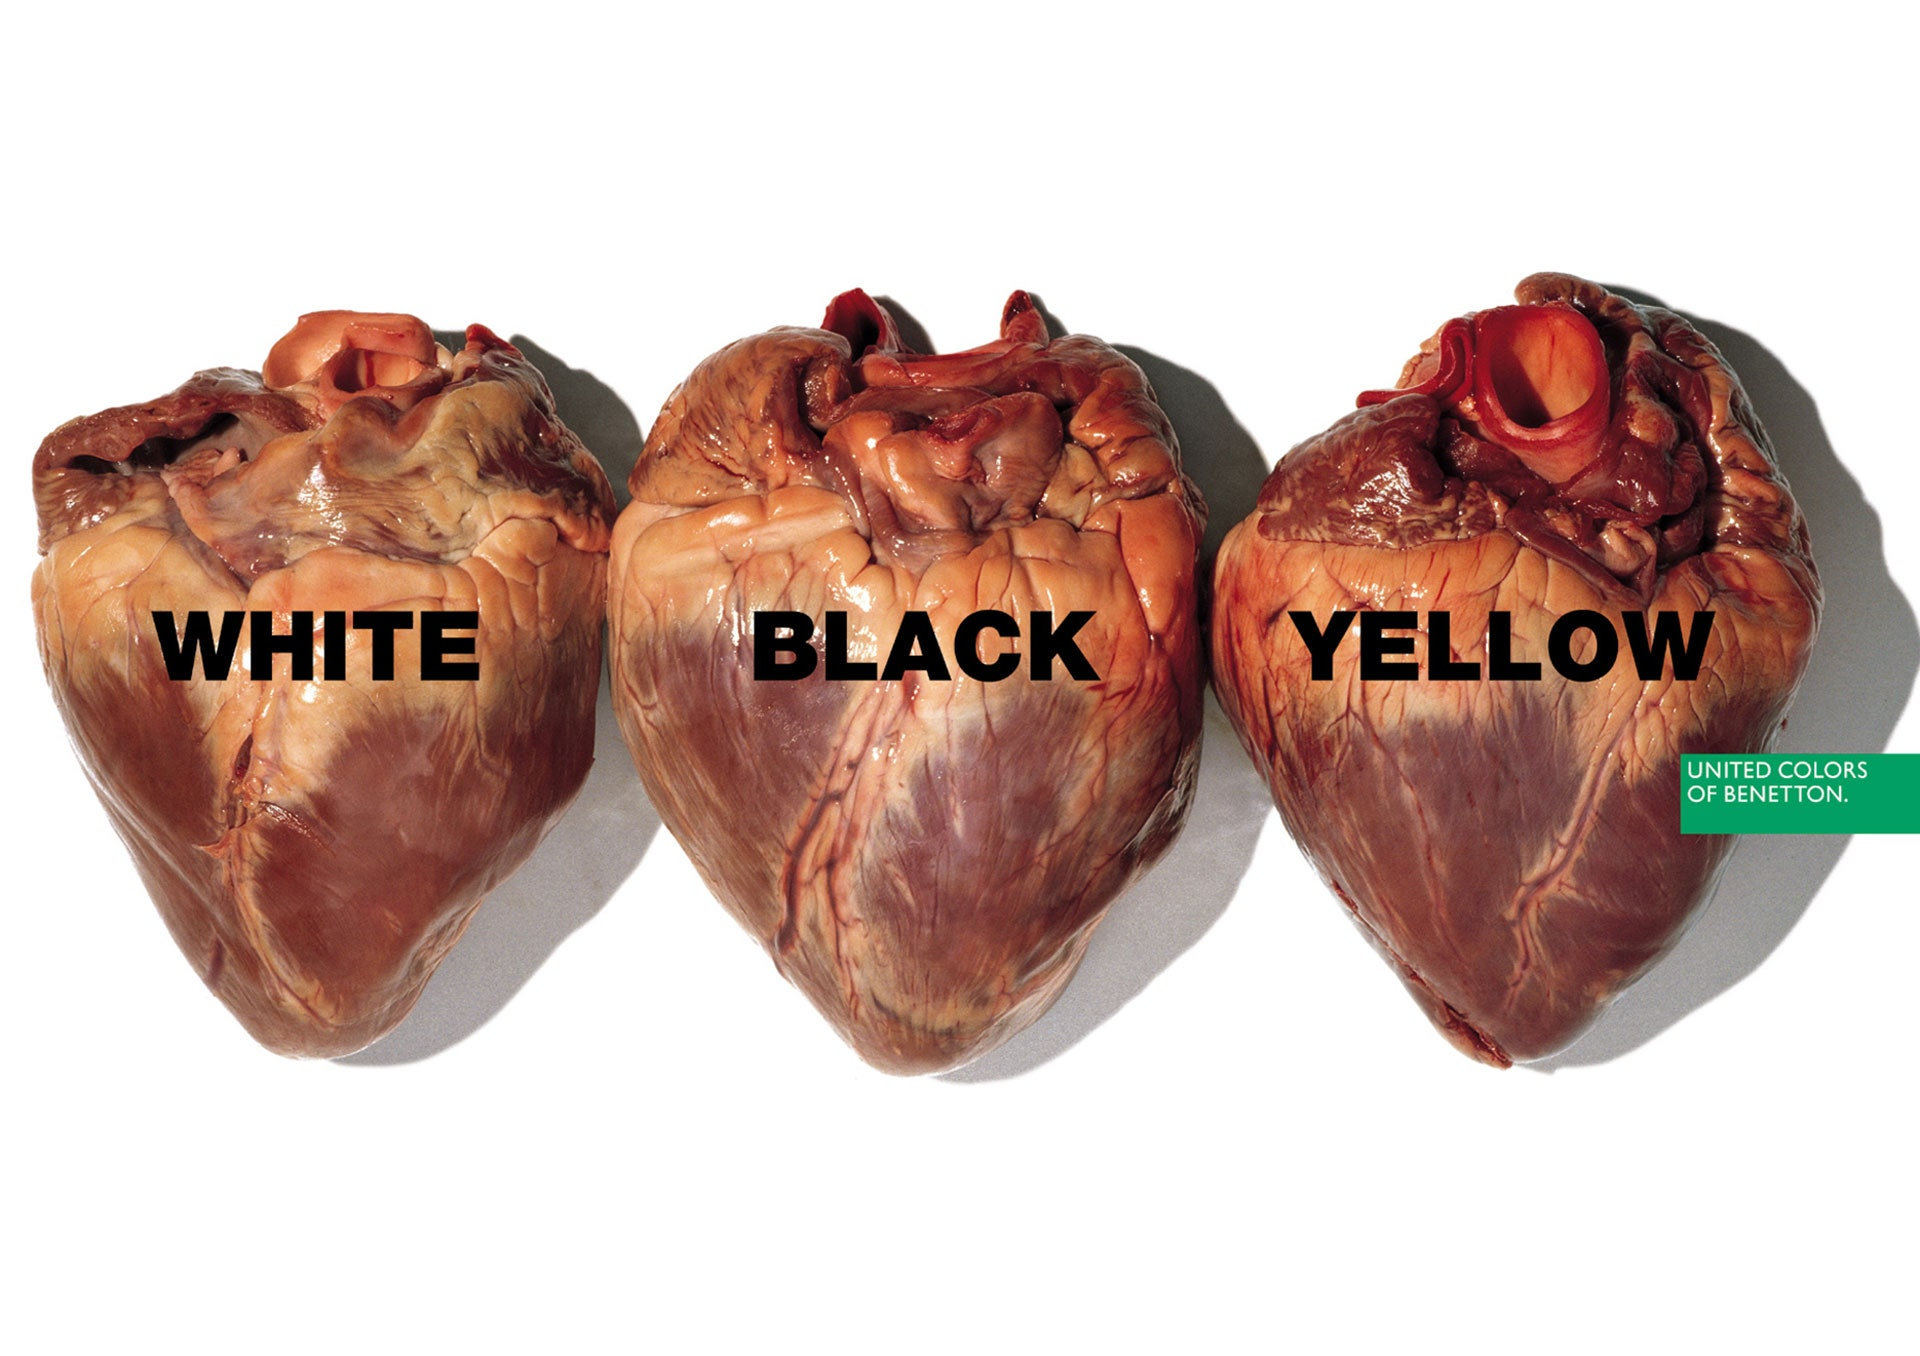 United Colors of Benetton Hearts Ad